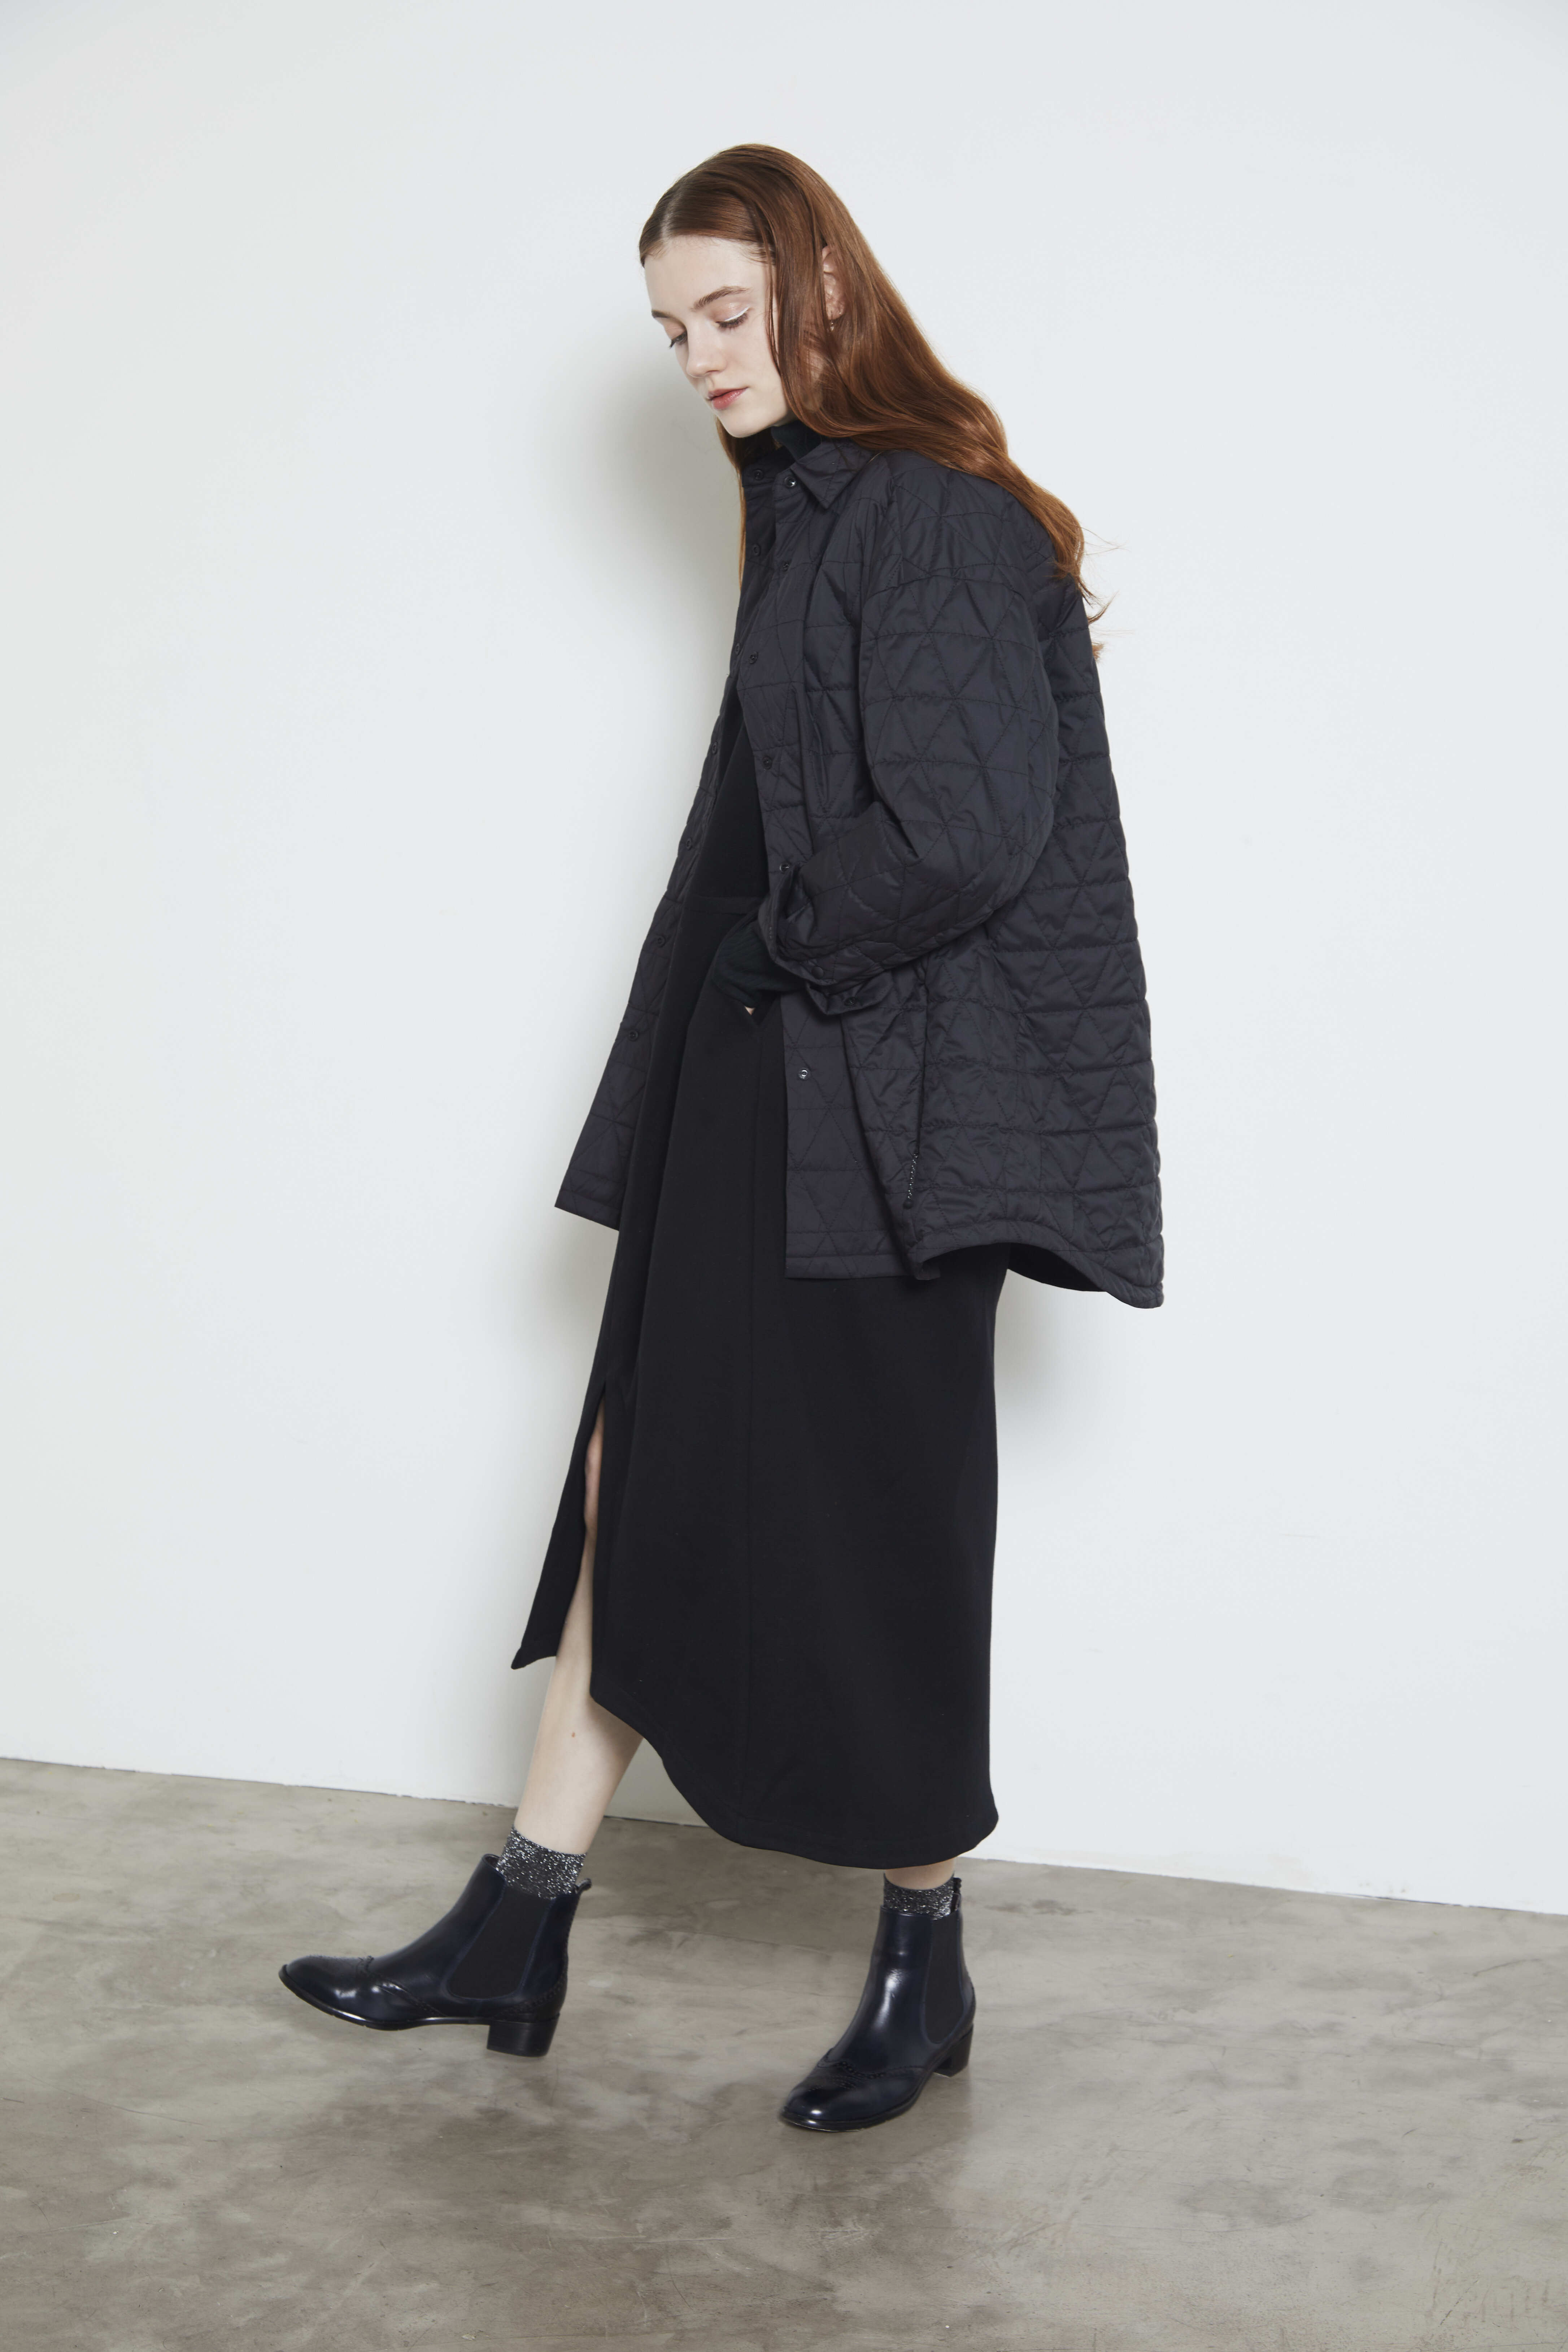 【2021AW先行受注アイテム】DOUBLE KNIT HIGH NECK DRESS